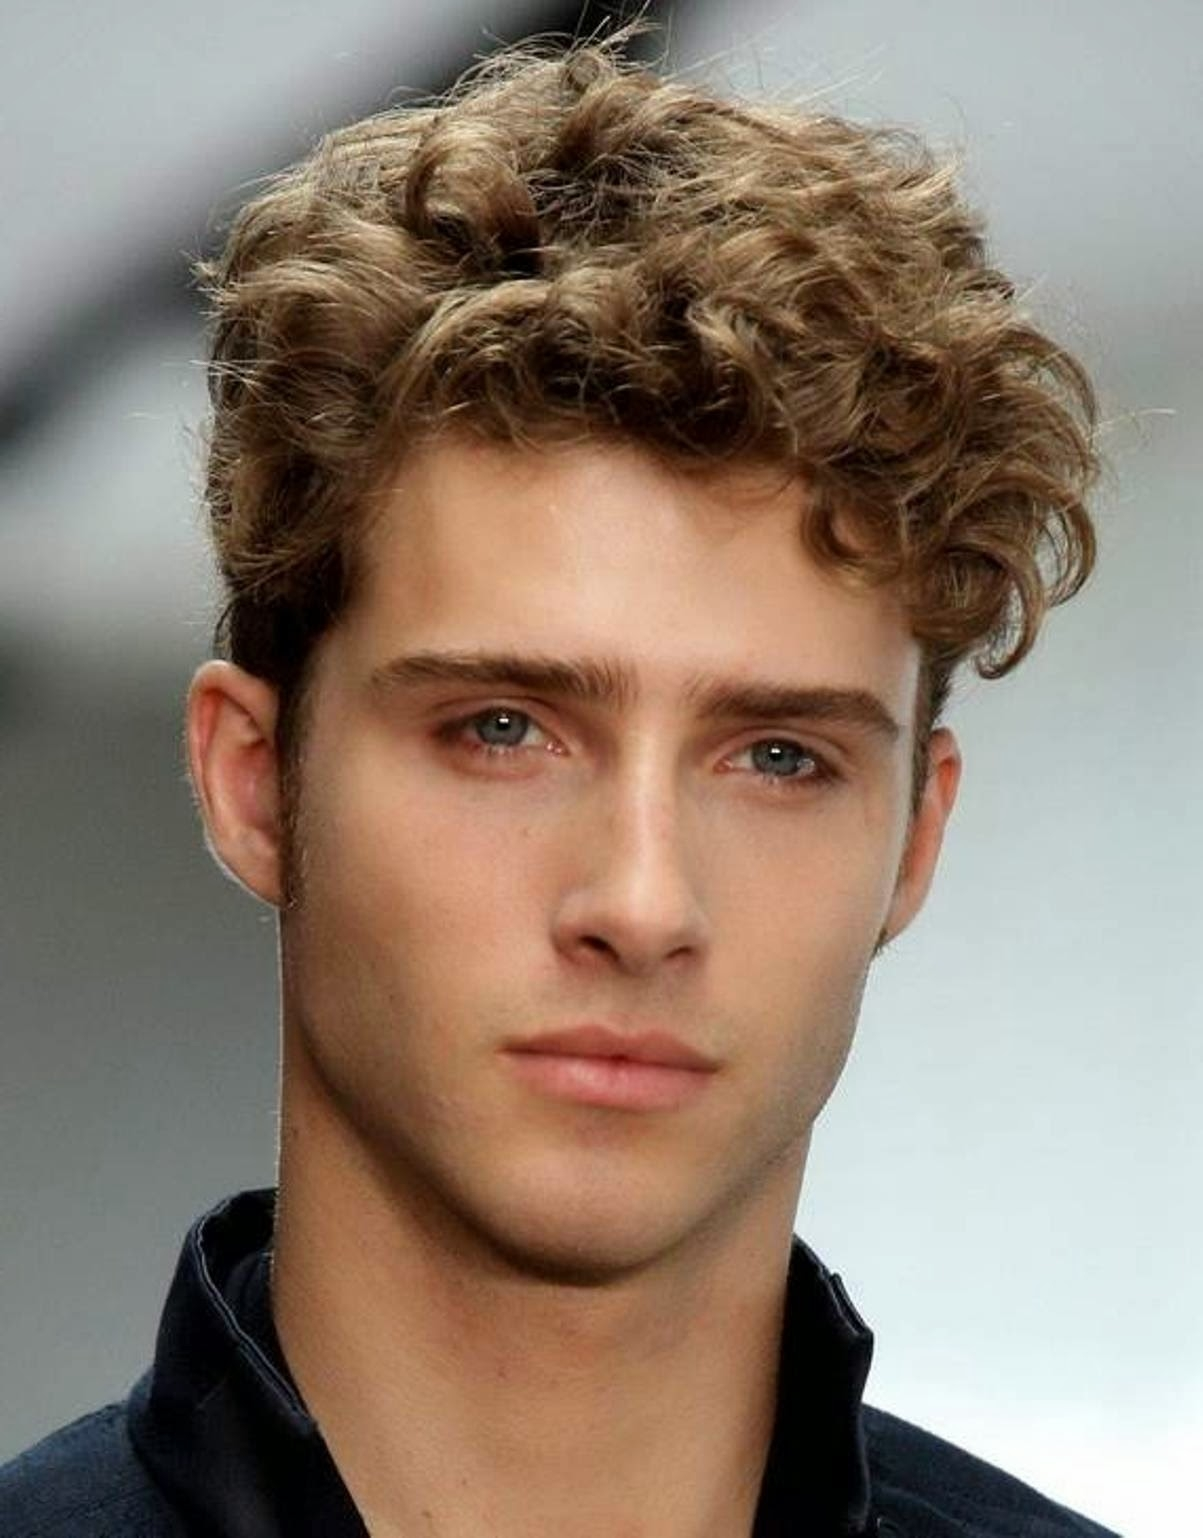 4_cool-short-curly-hair-styles-for-men